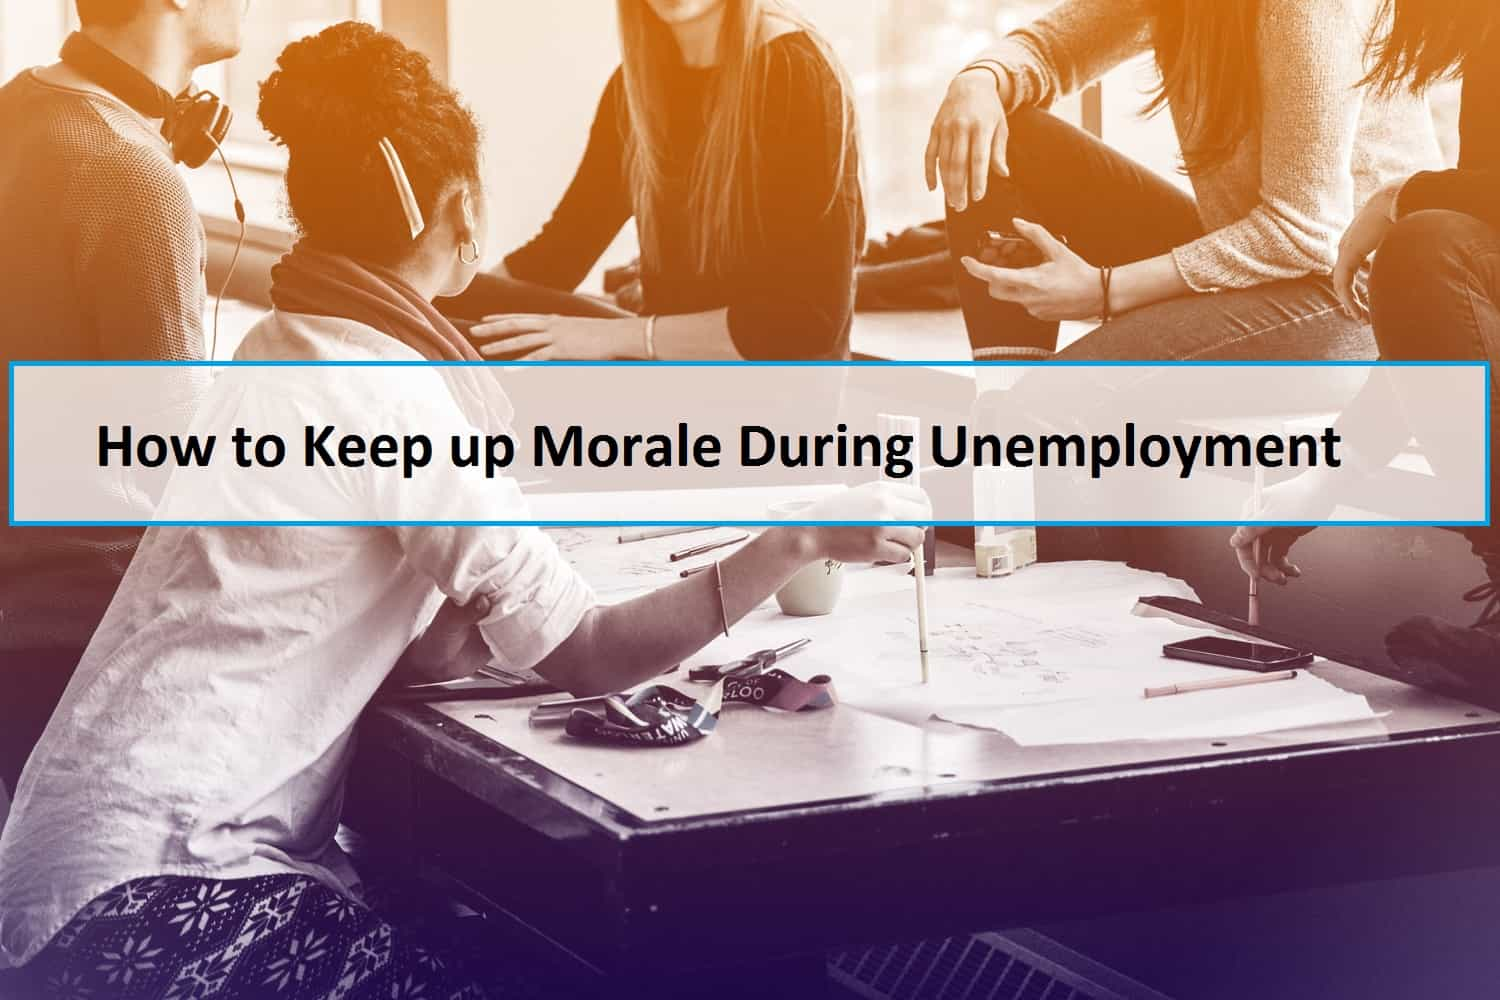 How to Keep up Morale During Unemployment